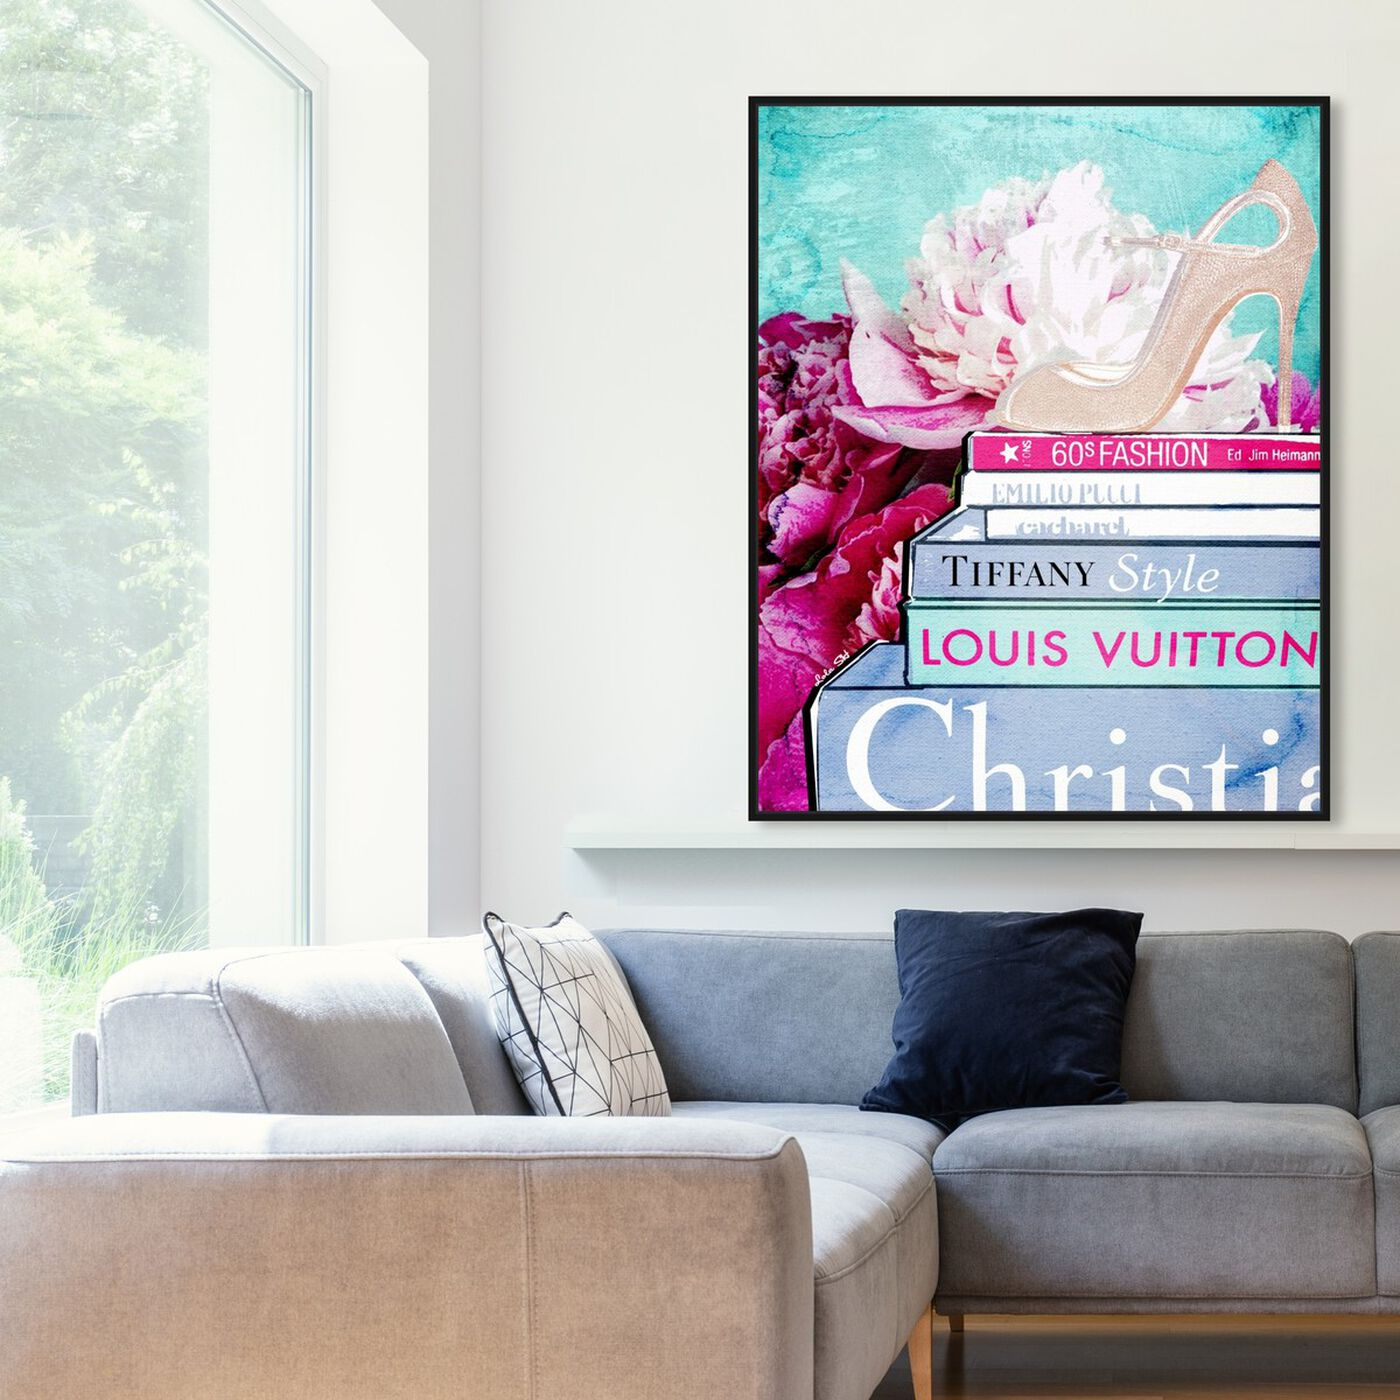 Hanging view of What's On My Mind featuring fashion and glam and shoes art.